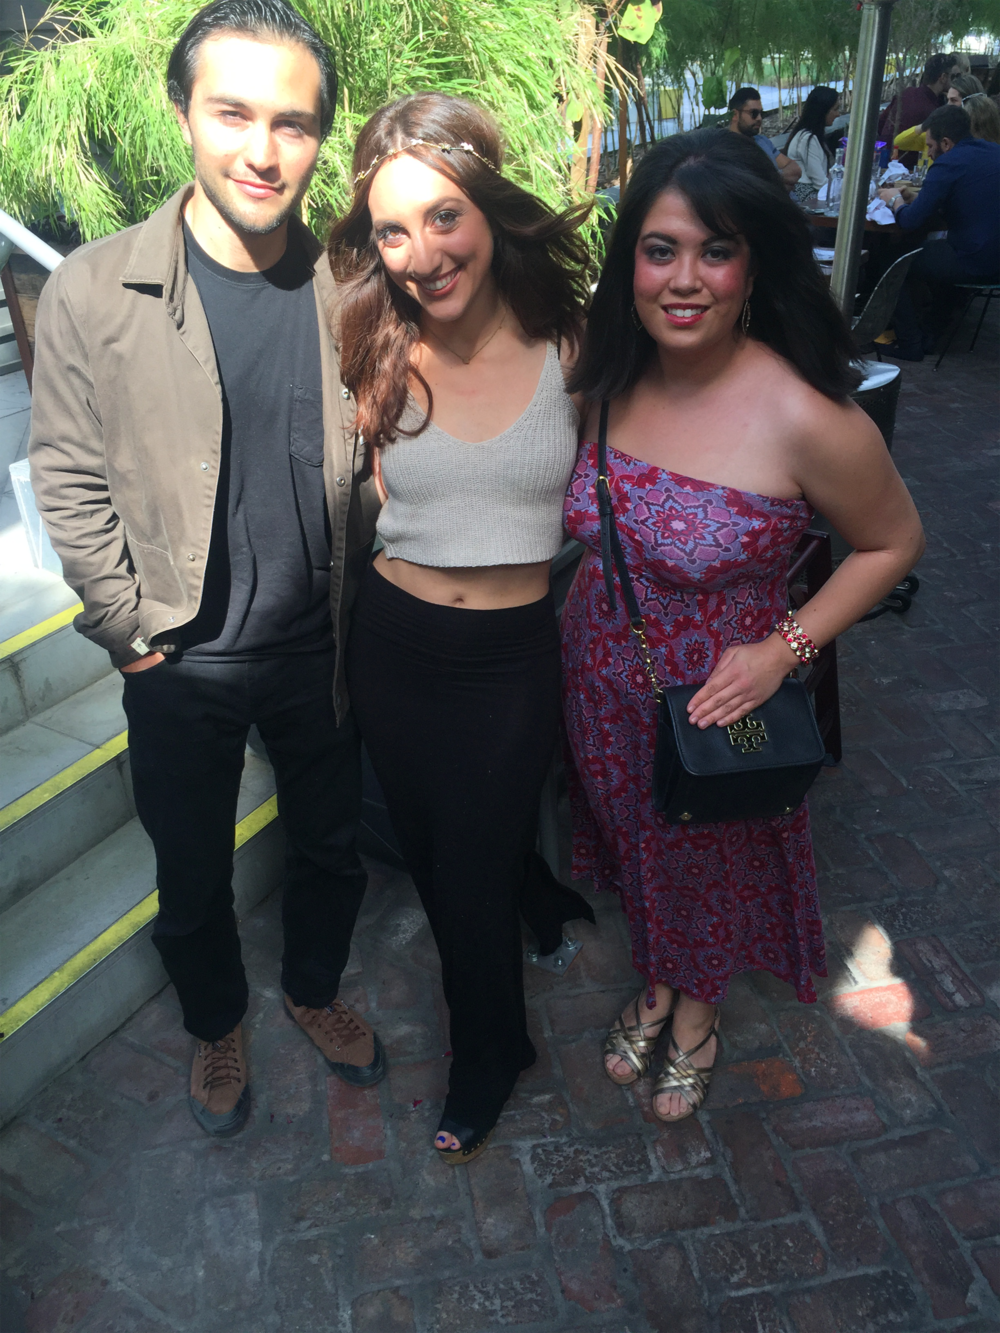 Steven Galekovic, Amy Hayakawa and Brielle Galekovic at Estrella Sunset